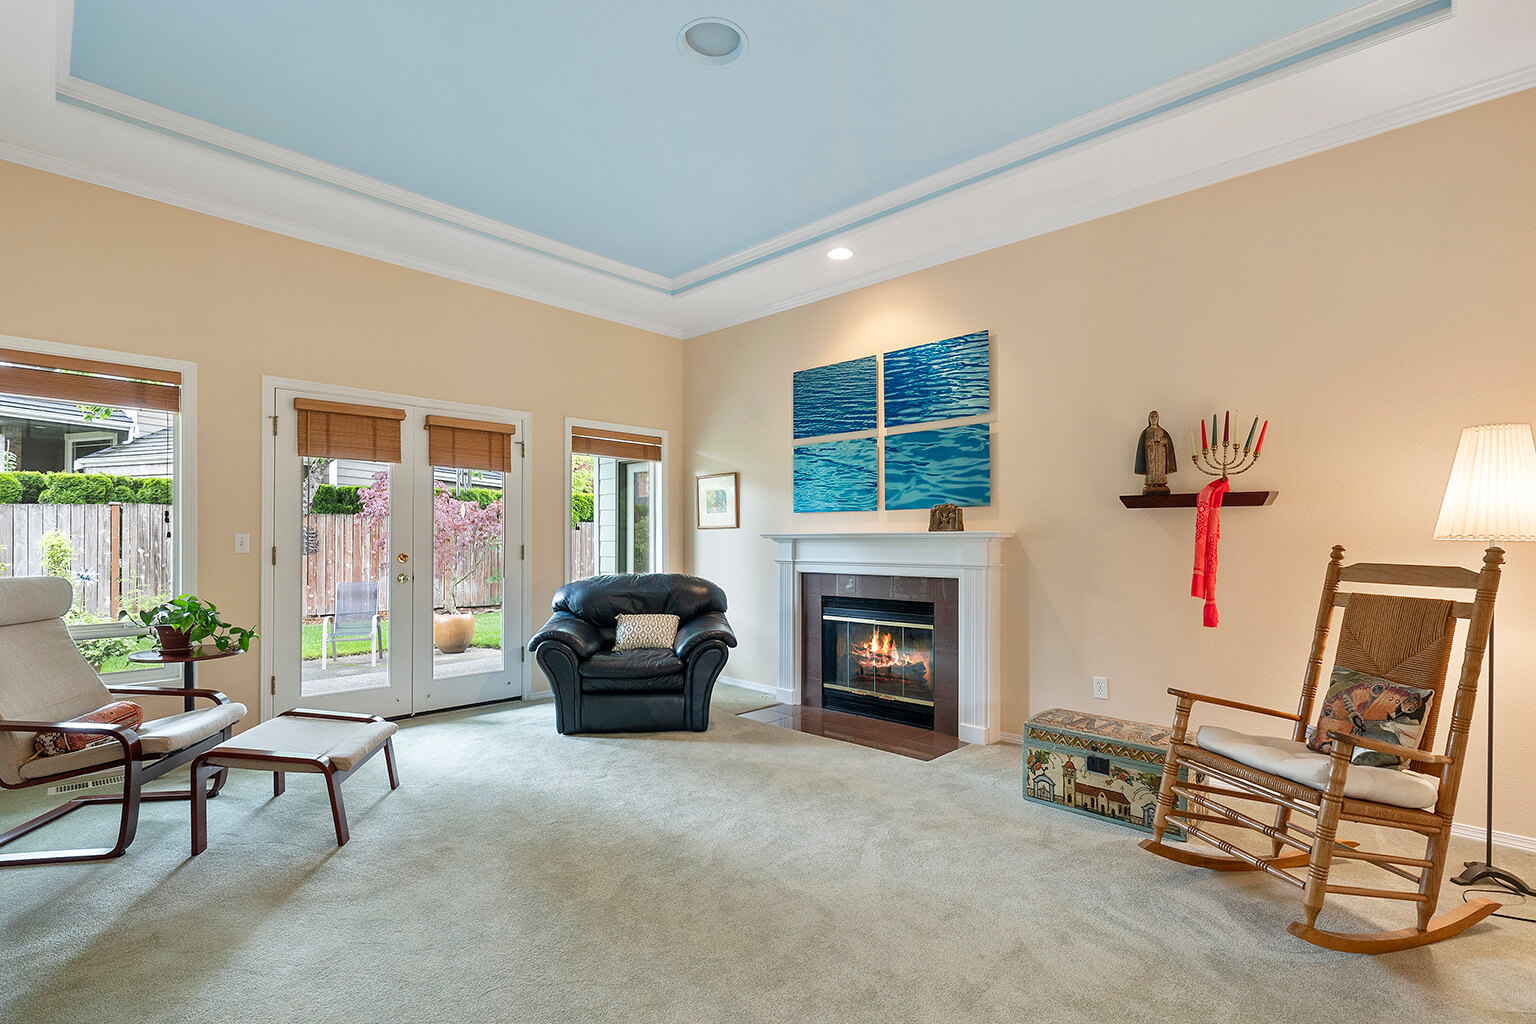 Living room features a wood burning fireplace with gas starter and French doors to a covered patio